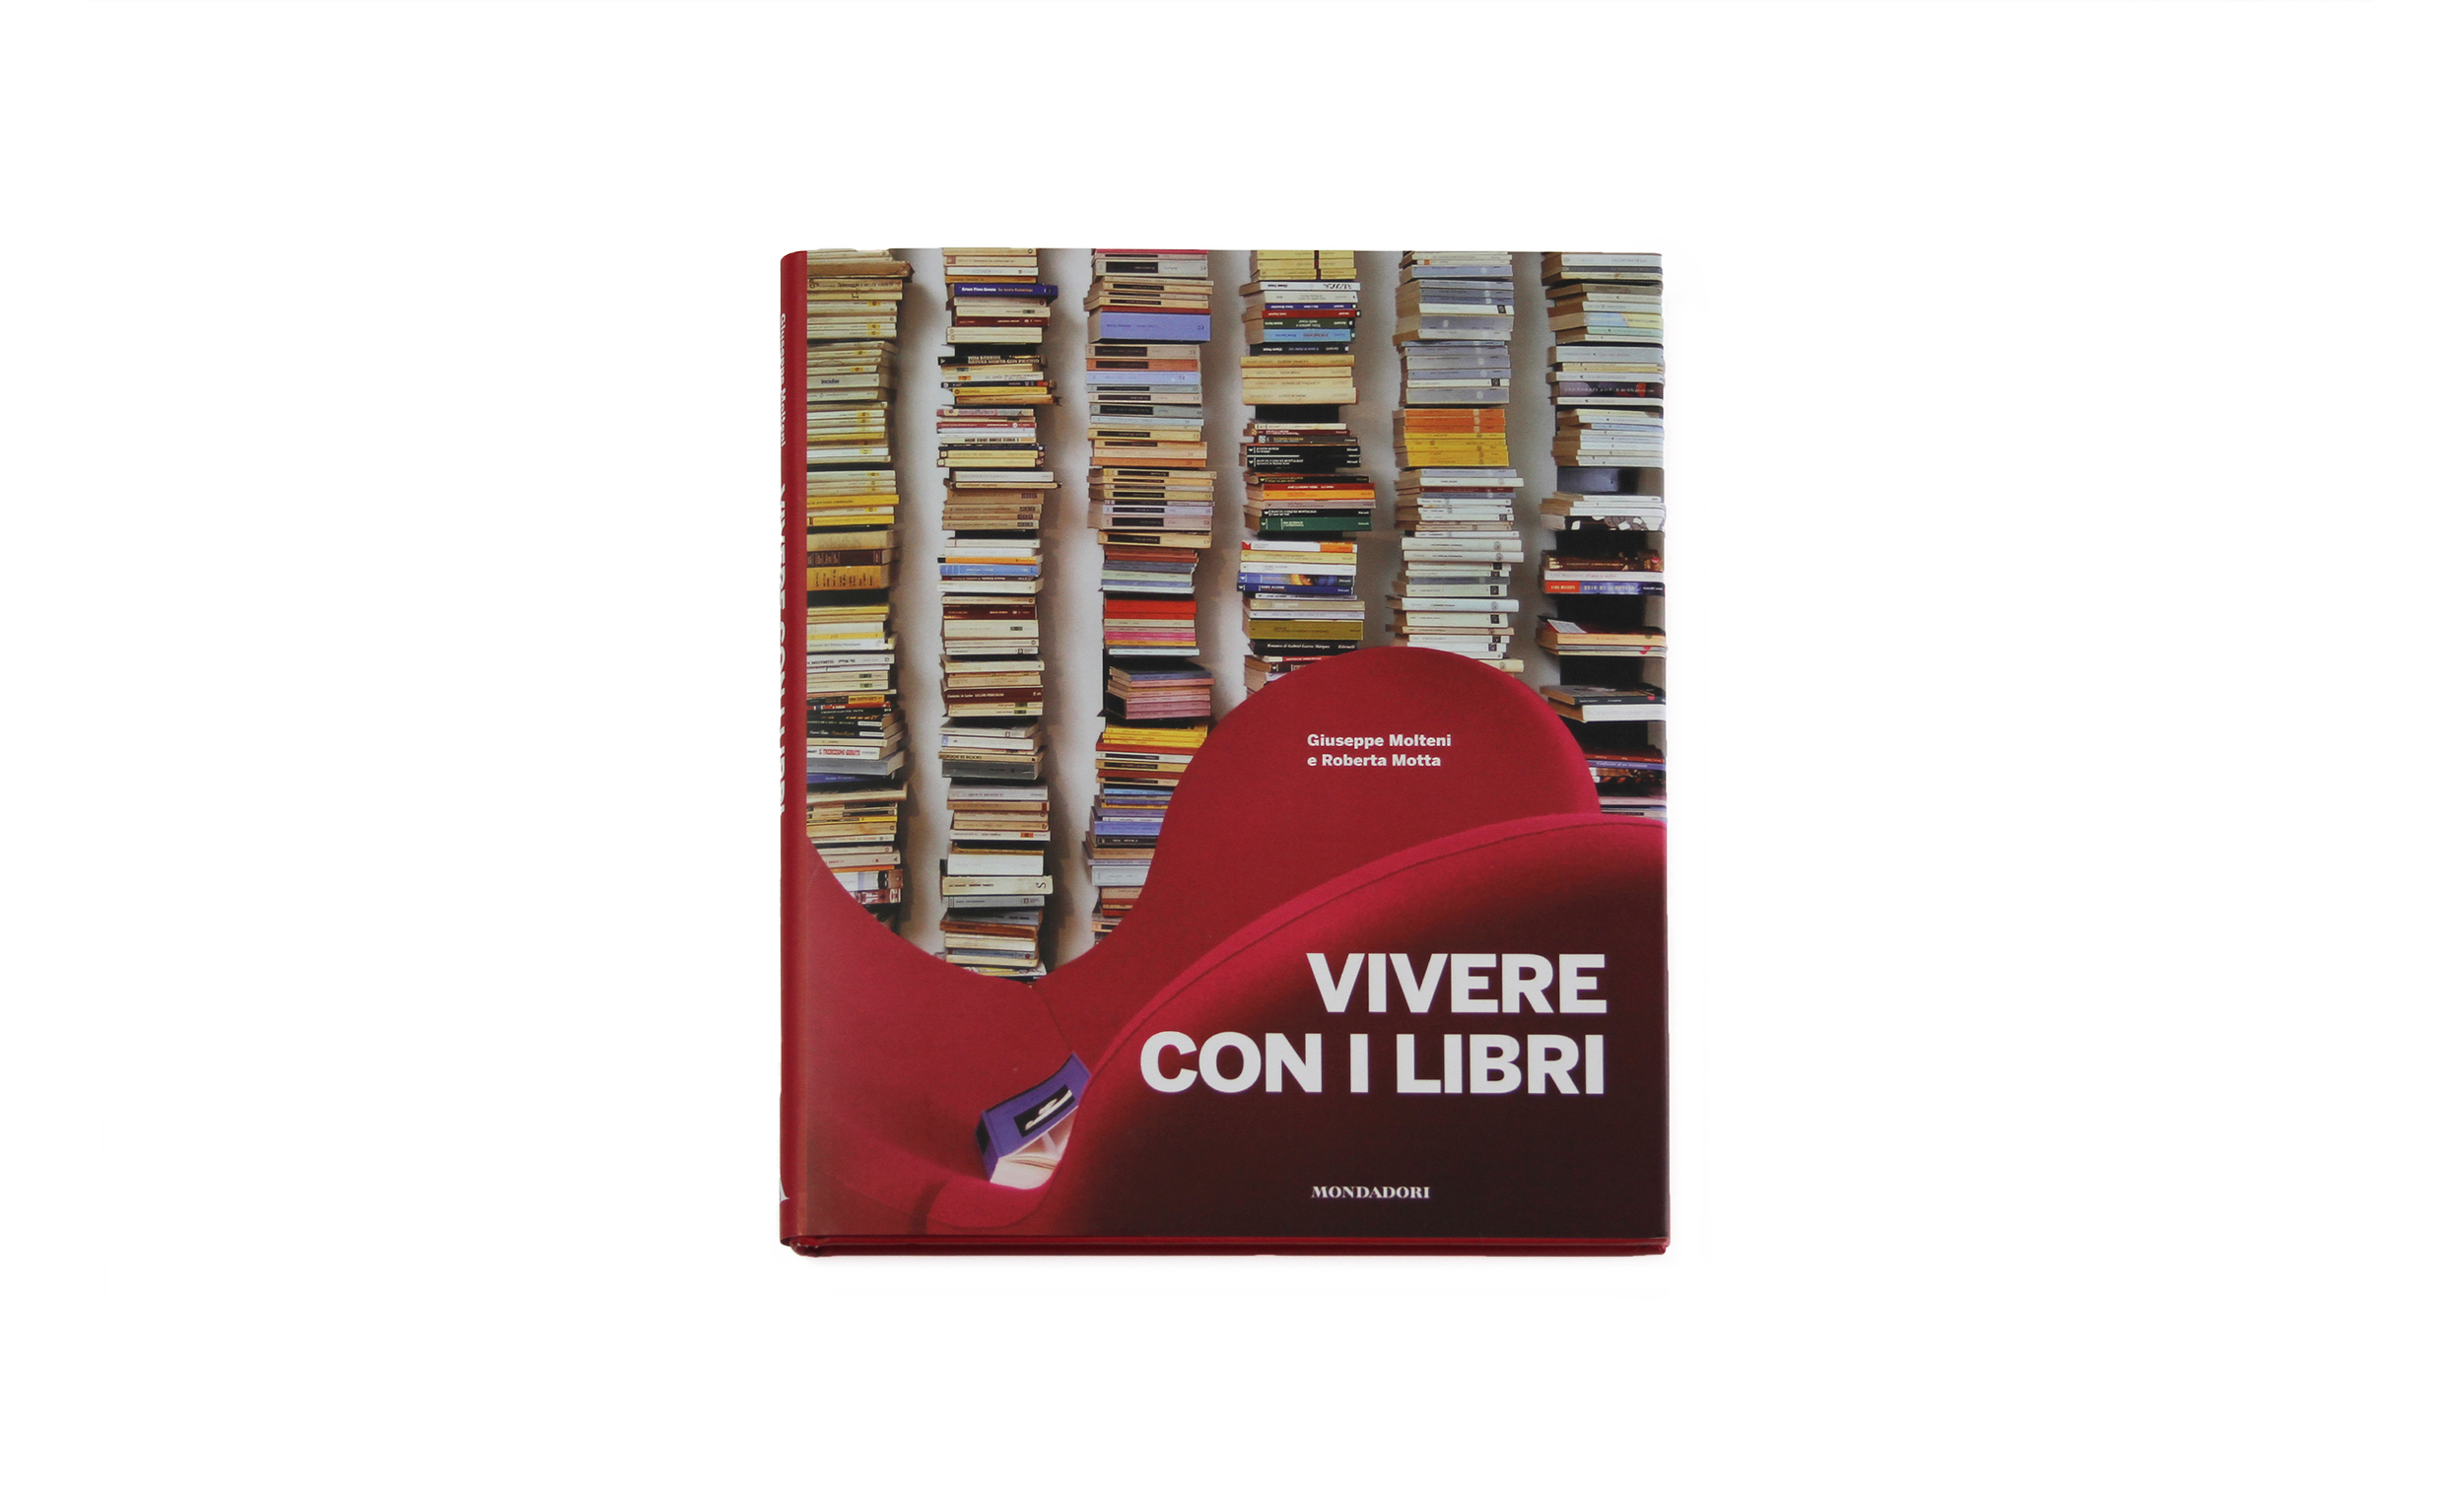 MP_PRESS_AD ViVERE CON LIBRI_COVER.jpg